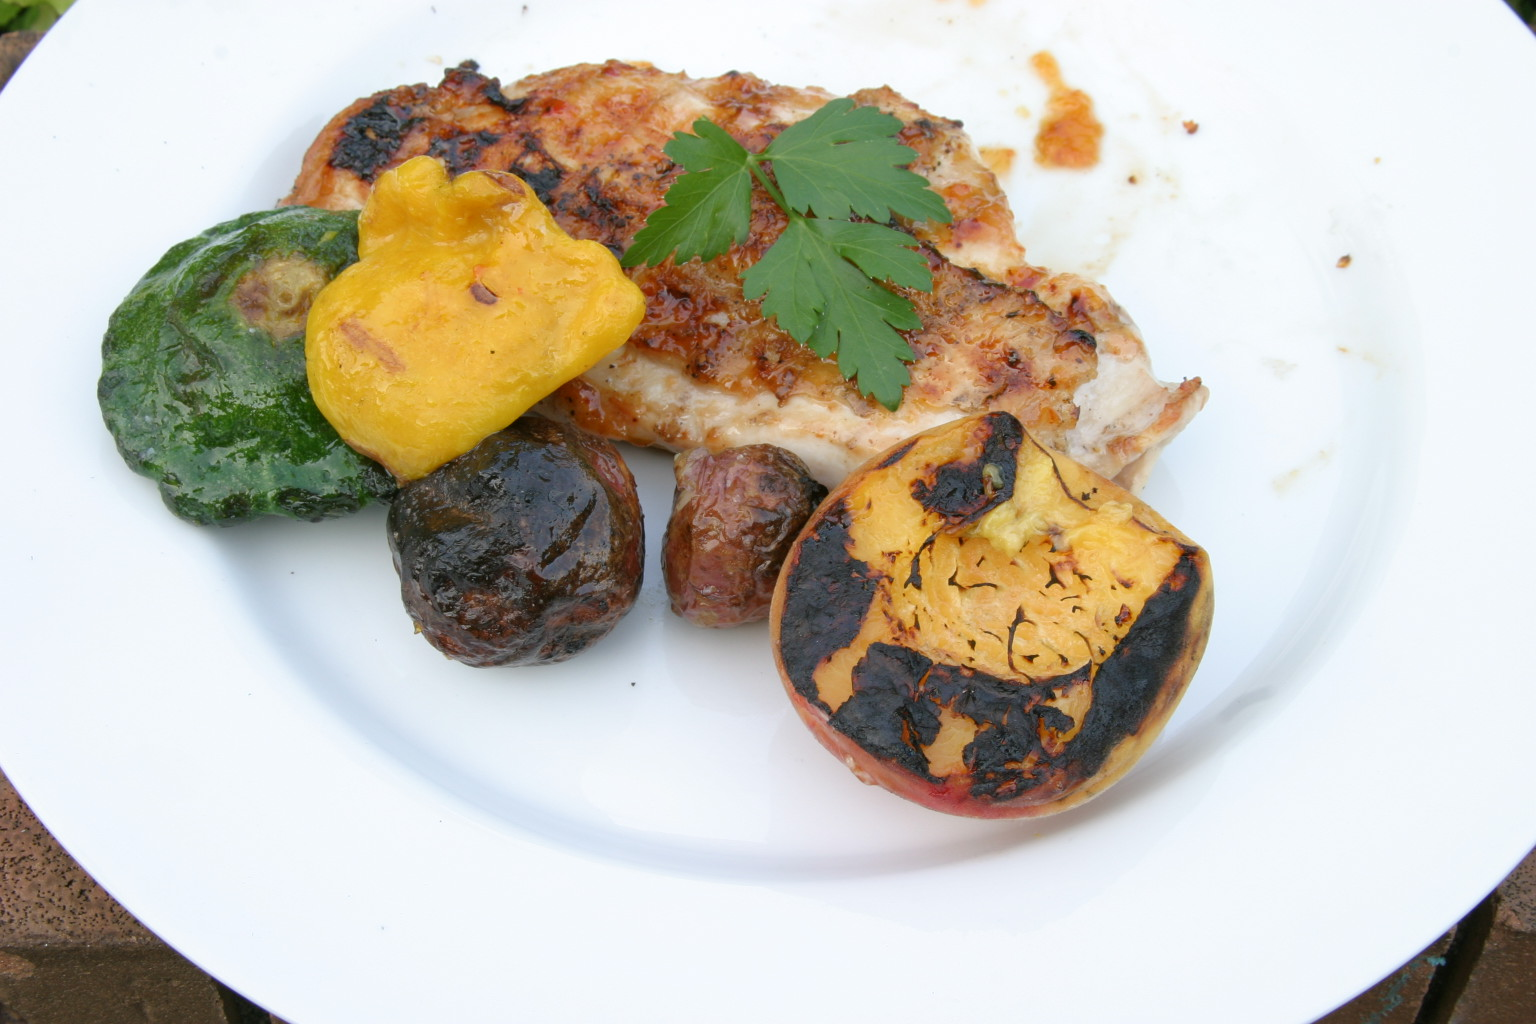 ... Our Fingers in the Pie: Grilled Chicken Breast with Peach Adobo Sauce